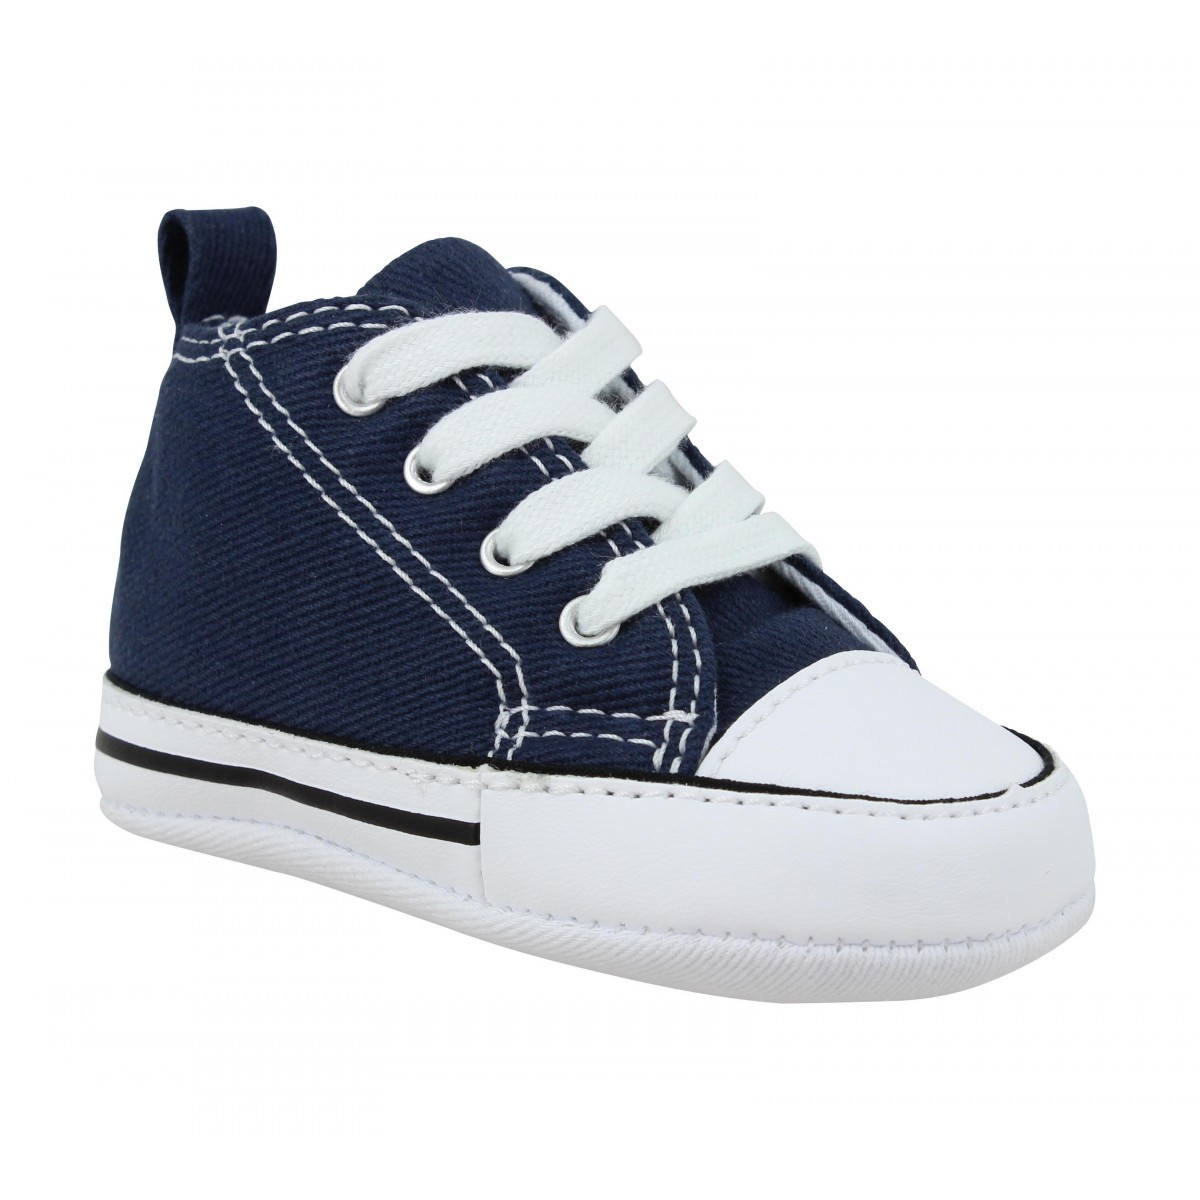 Baskets CONVERSE First Star toile Enfant Marine